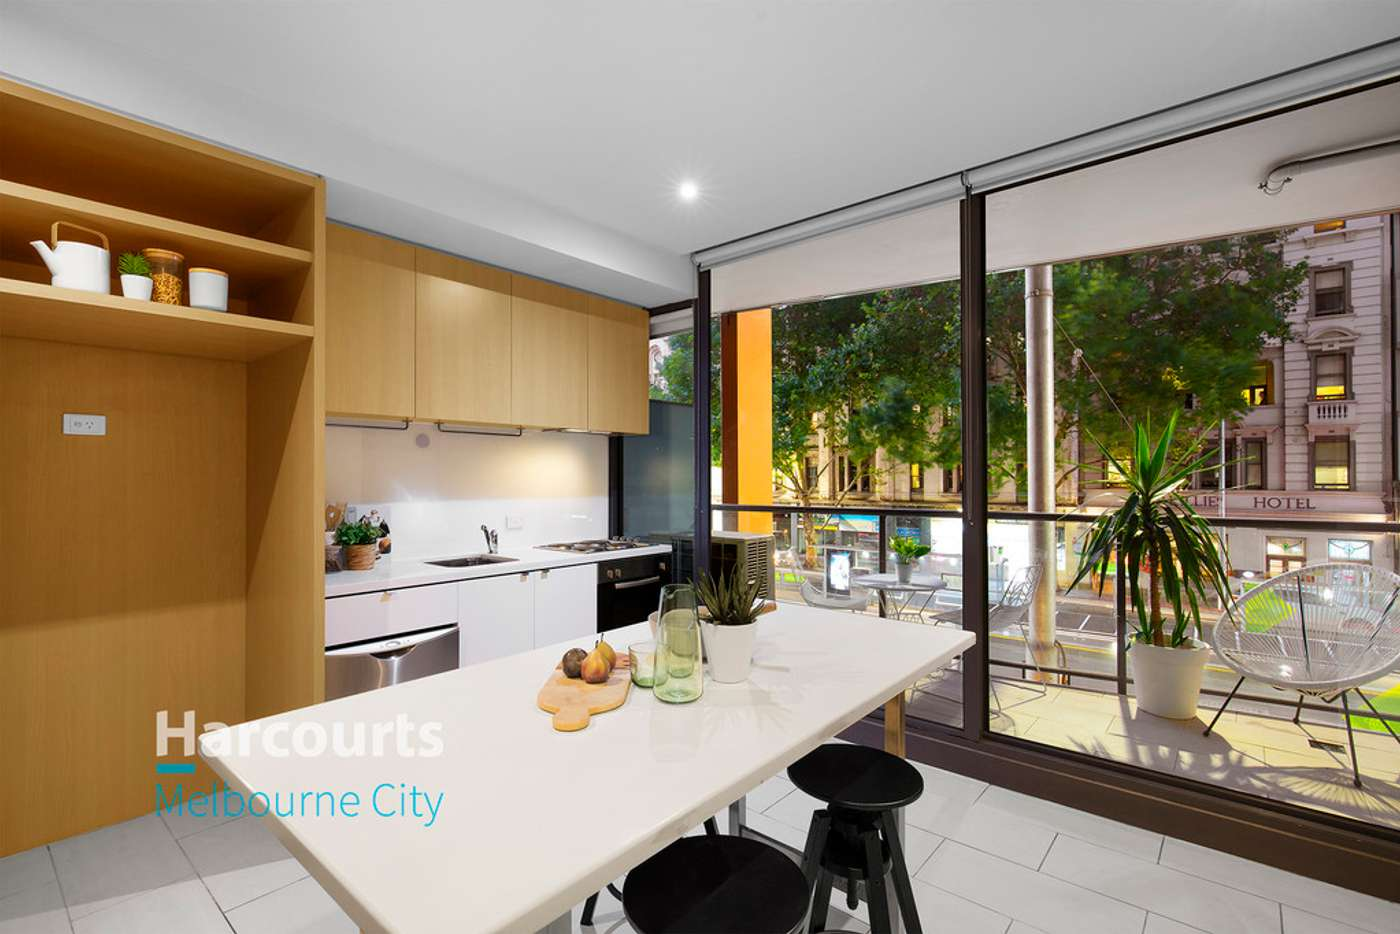 Fifth view of Homely apartment listing, 107/565 Flinders Street, Melbourne VIC 3000